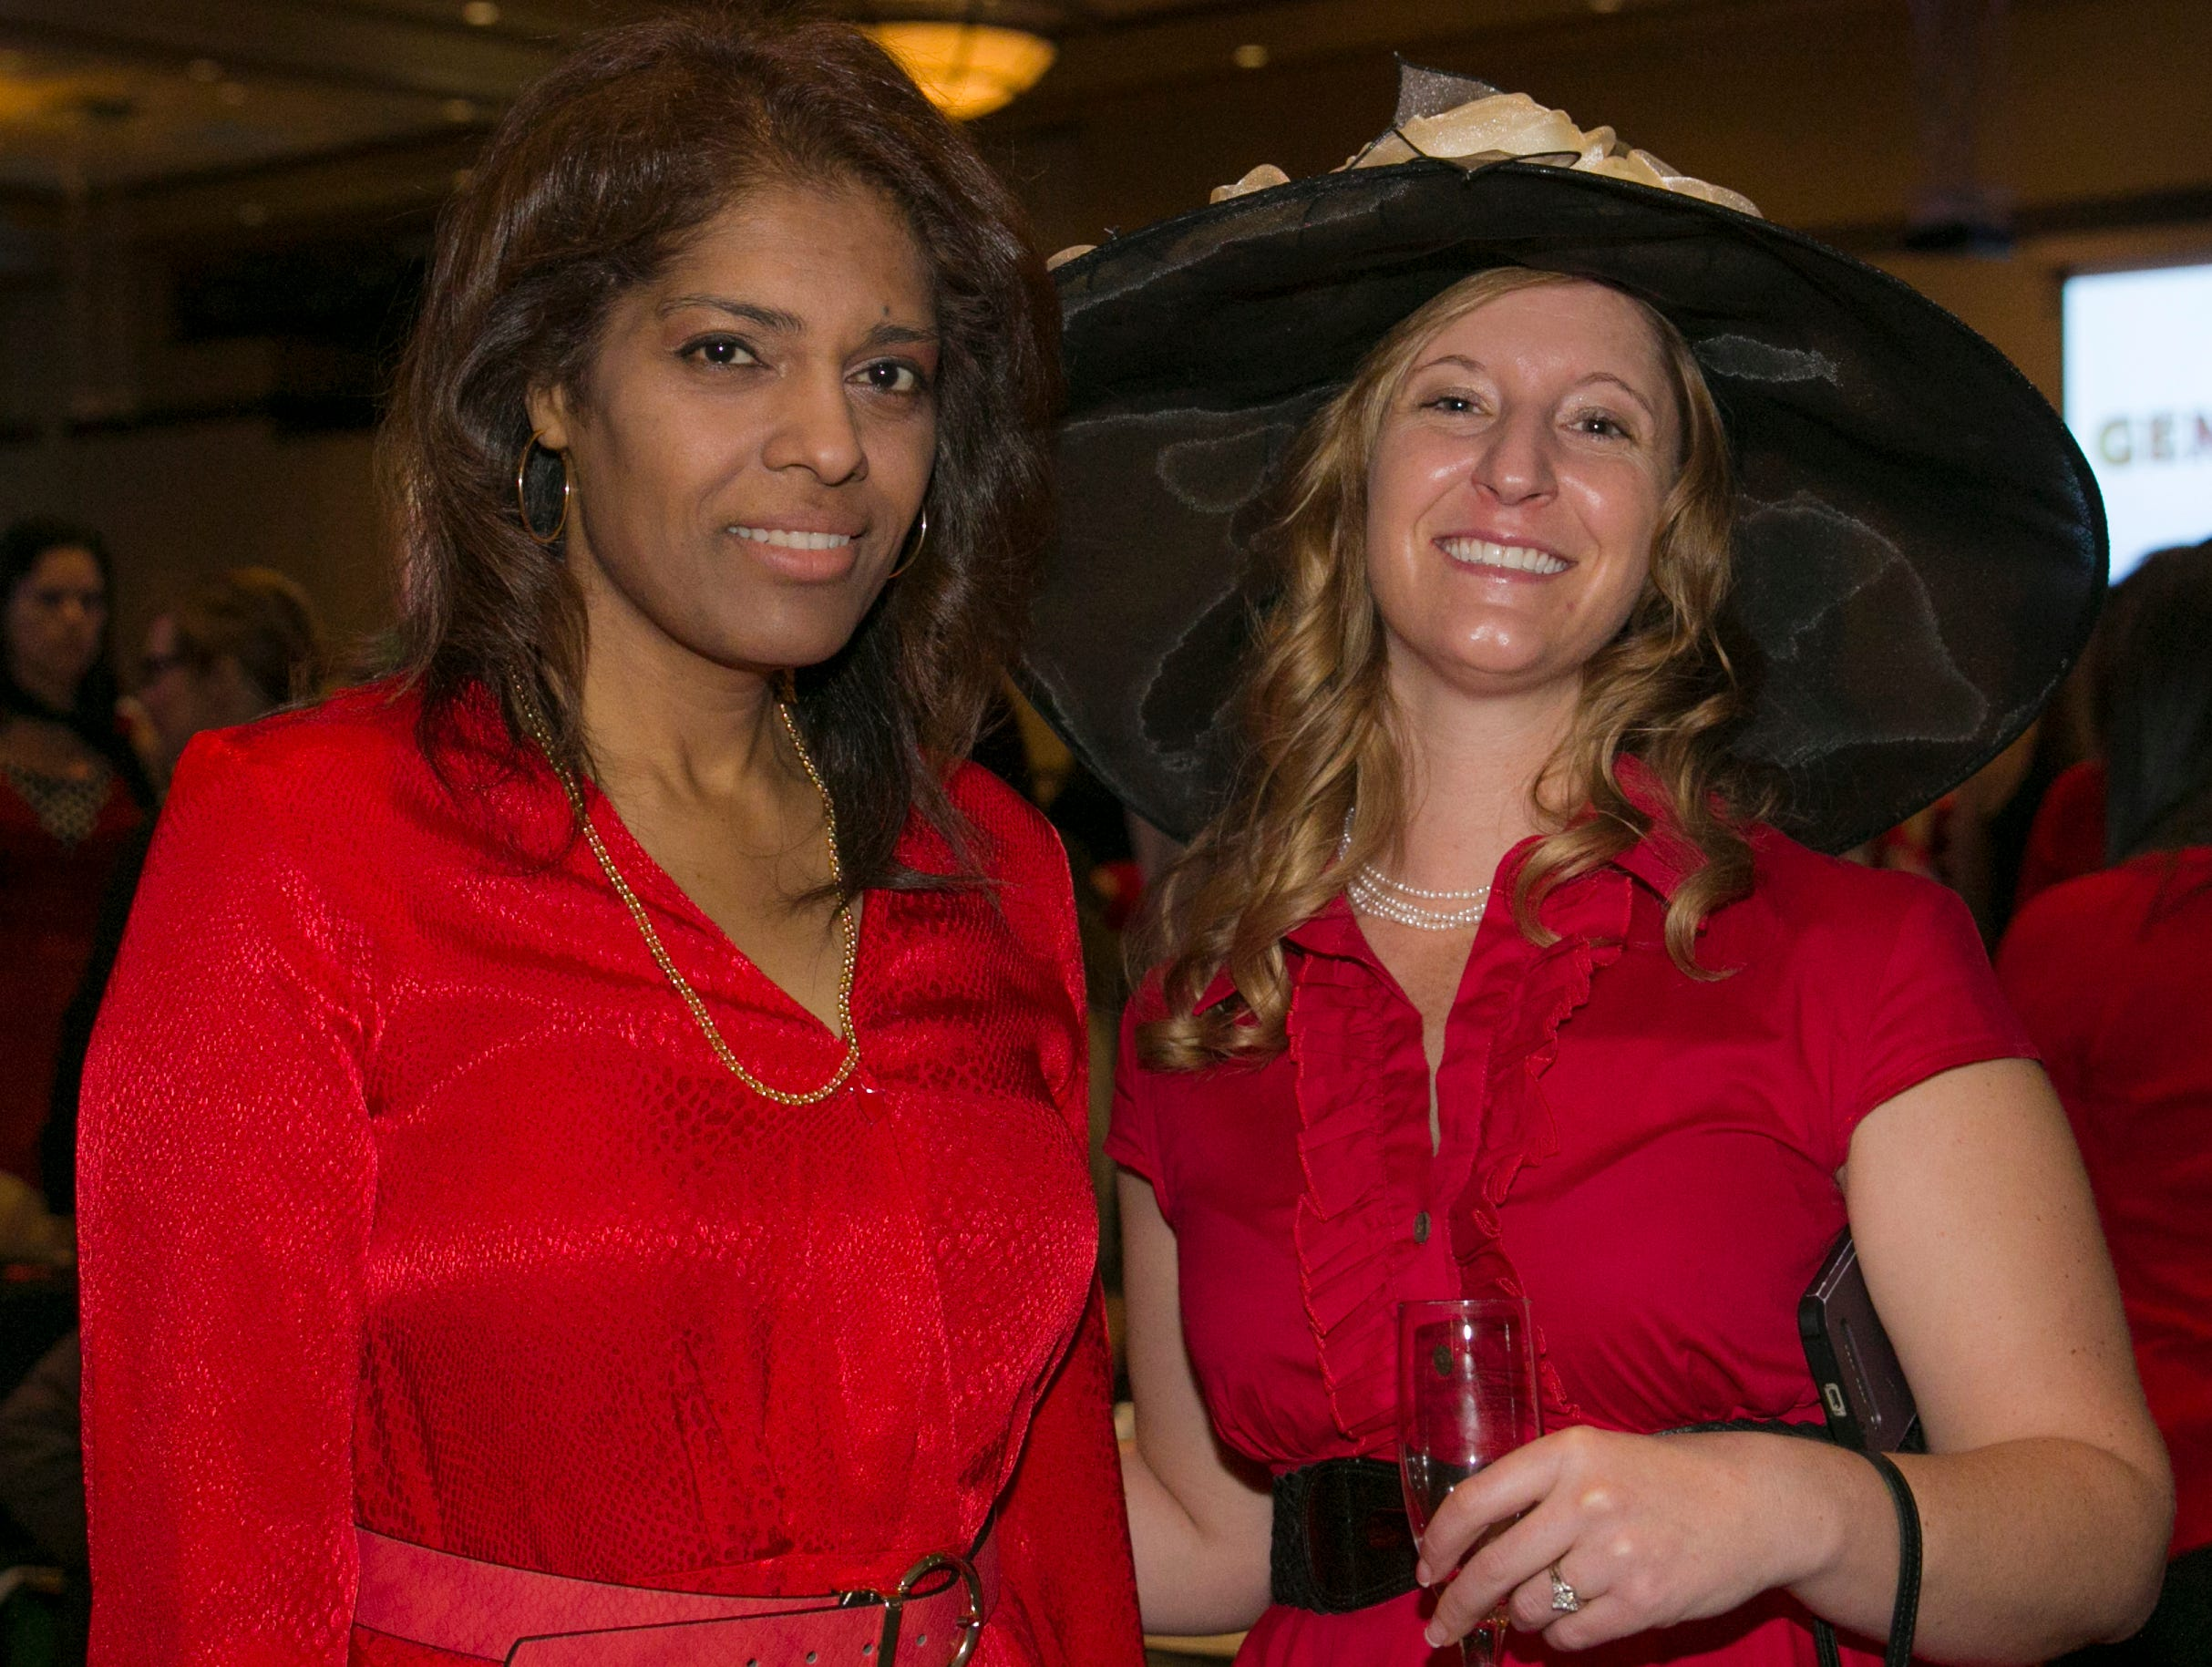 Dr. Kim Nuthi and Dr. Molly Torvinen during the 15th Annual Go Red for Women Luncheon on Friday night,March 1, 2019 held at the downtown Reno Ballroom.